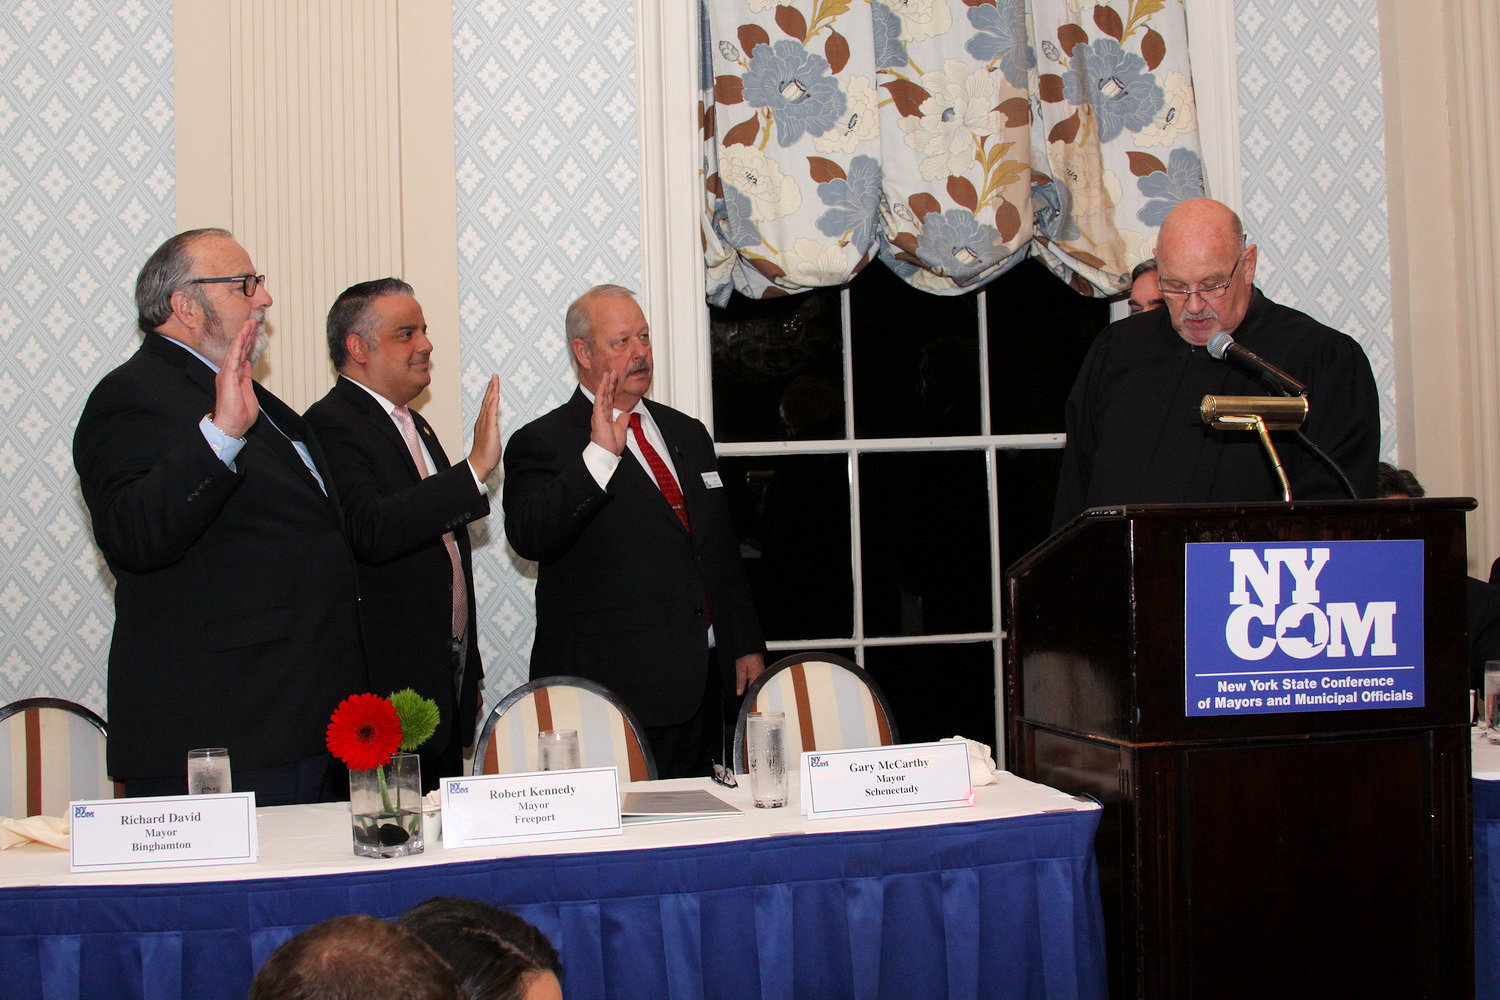 Mayor Robert Kennedy, third from left, was elected and sworn in as the president of the New York Conference of Mayors on May 6. Also sworn in as second vice president was Rockville Centre Mayor Francis Murray, left, and Mayor from the City of Binghamton as the first vice president.